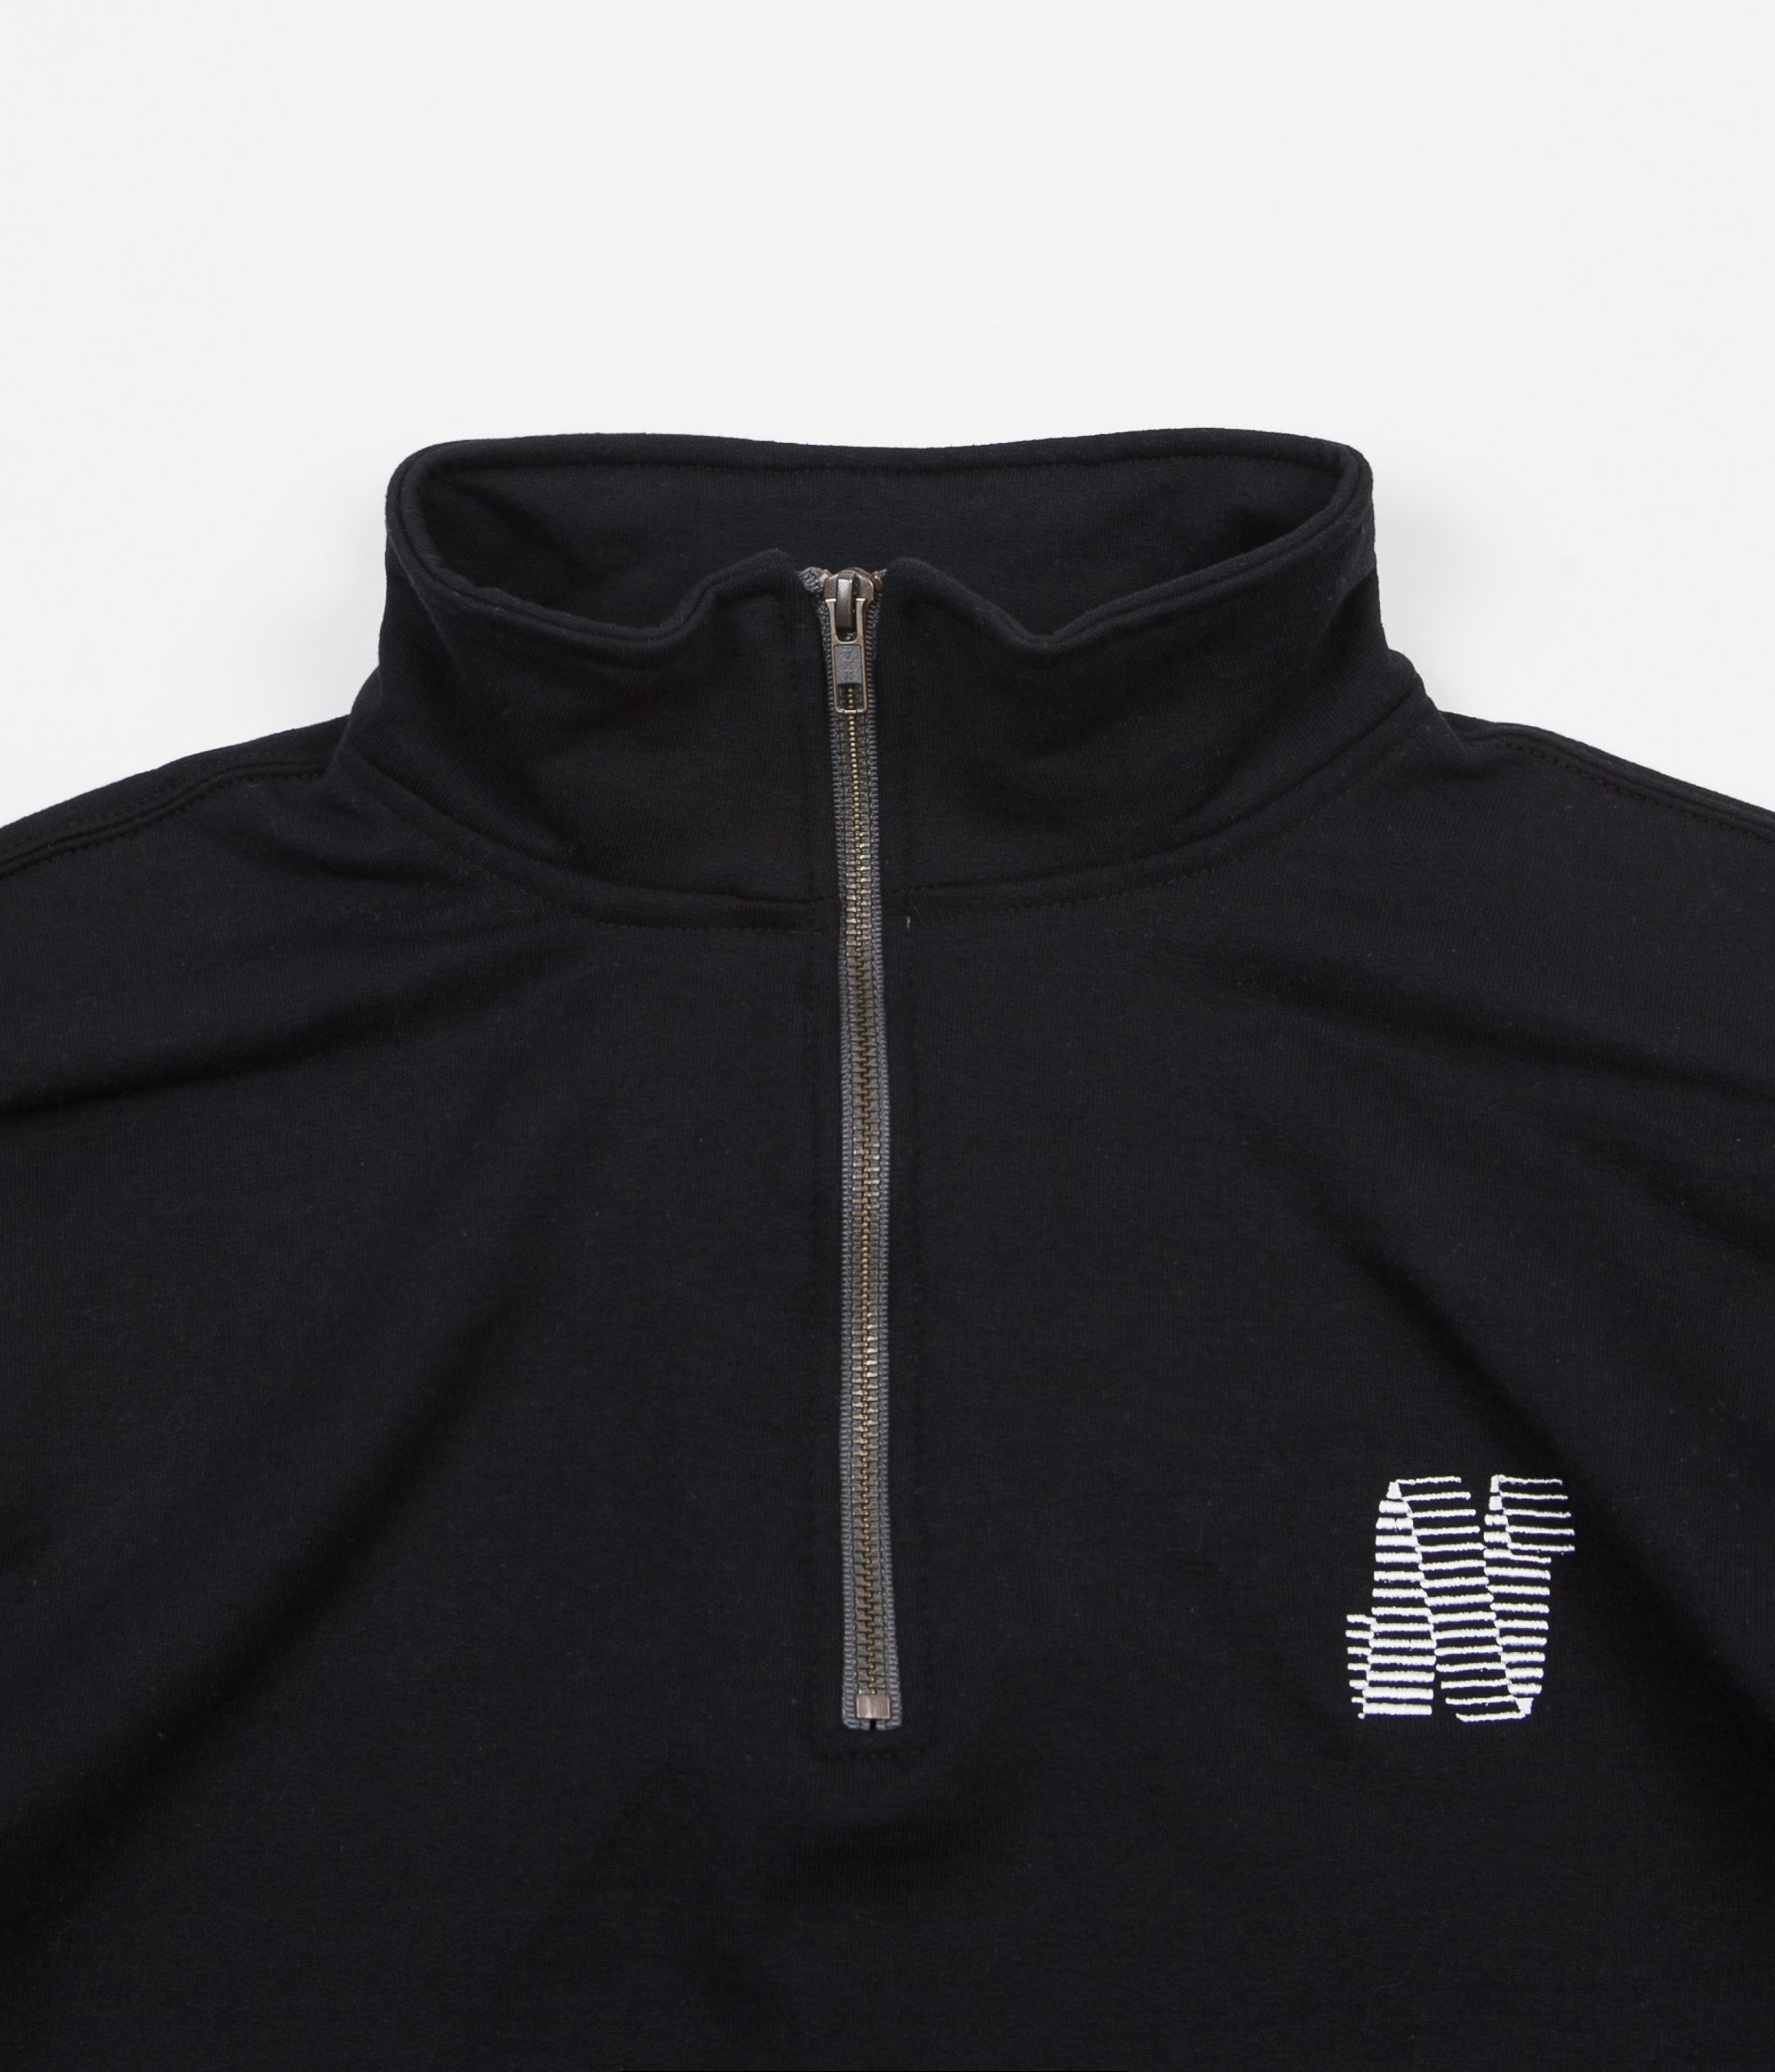 North Skateboard Magazine N Logo Embroidered 1/4 Zip Sweatshirt - Black / White